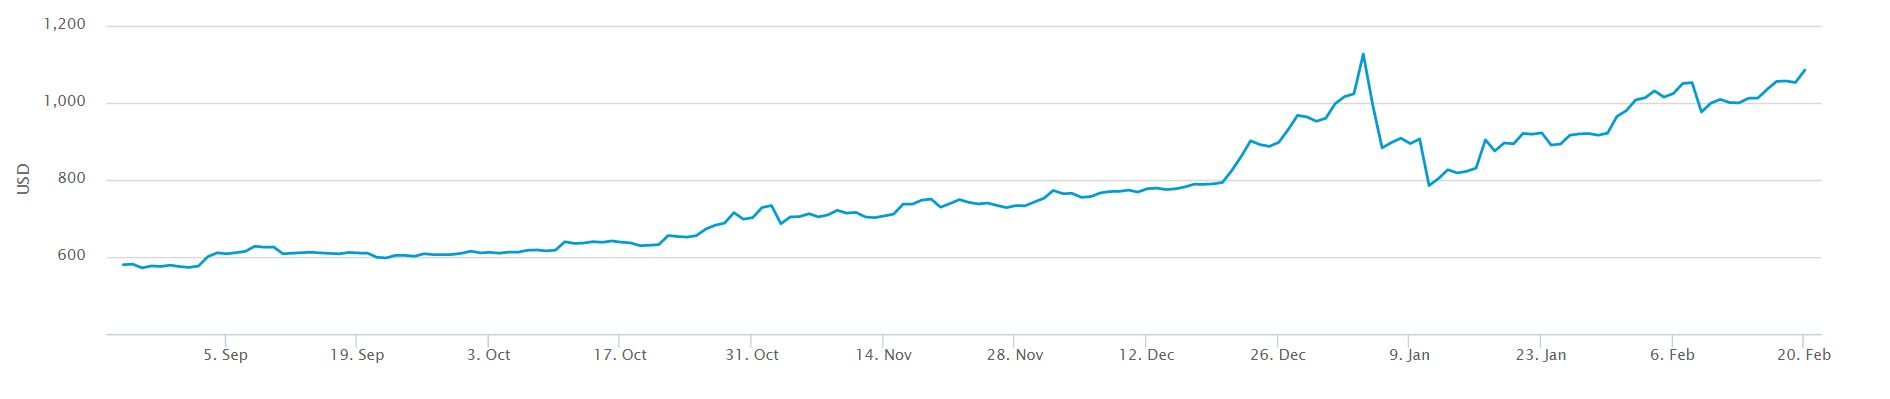 Bitcoin Prices Over The Last 180 Days